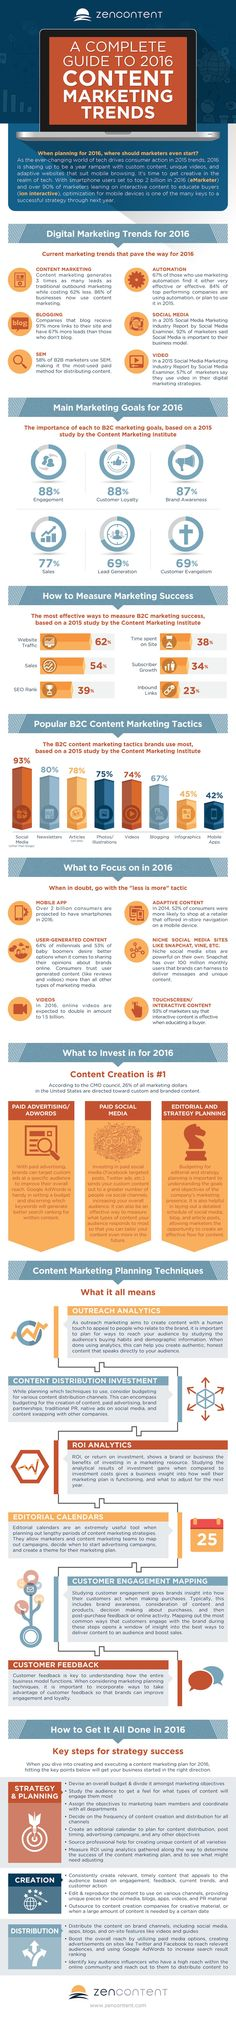 A Guide to 2016 Content Marketing Trends [Infographic]  Content marketing is an ever-evolving opportunity for marketers to reach new customers and gather data on their unique audience. But with the constant changes in the digital world, content creation needs to progress at an almost alarming rate.